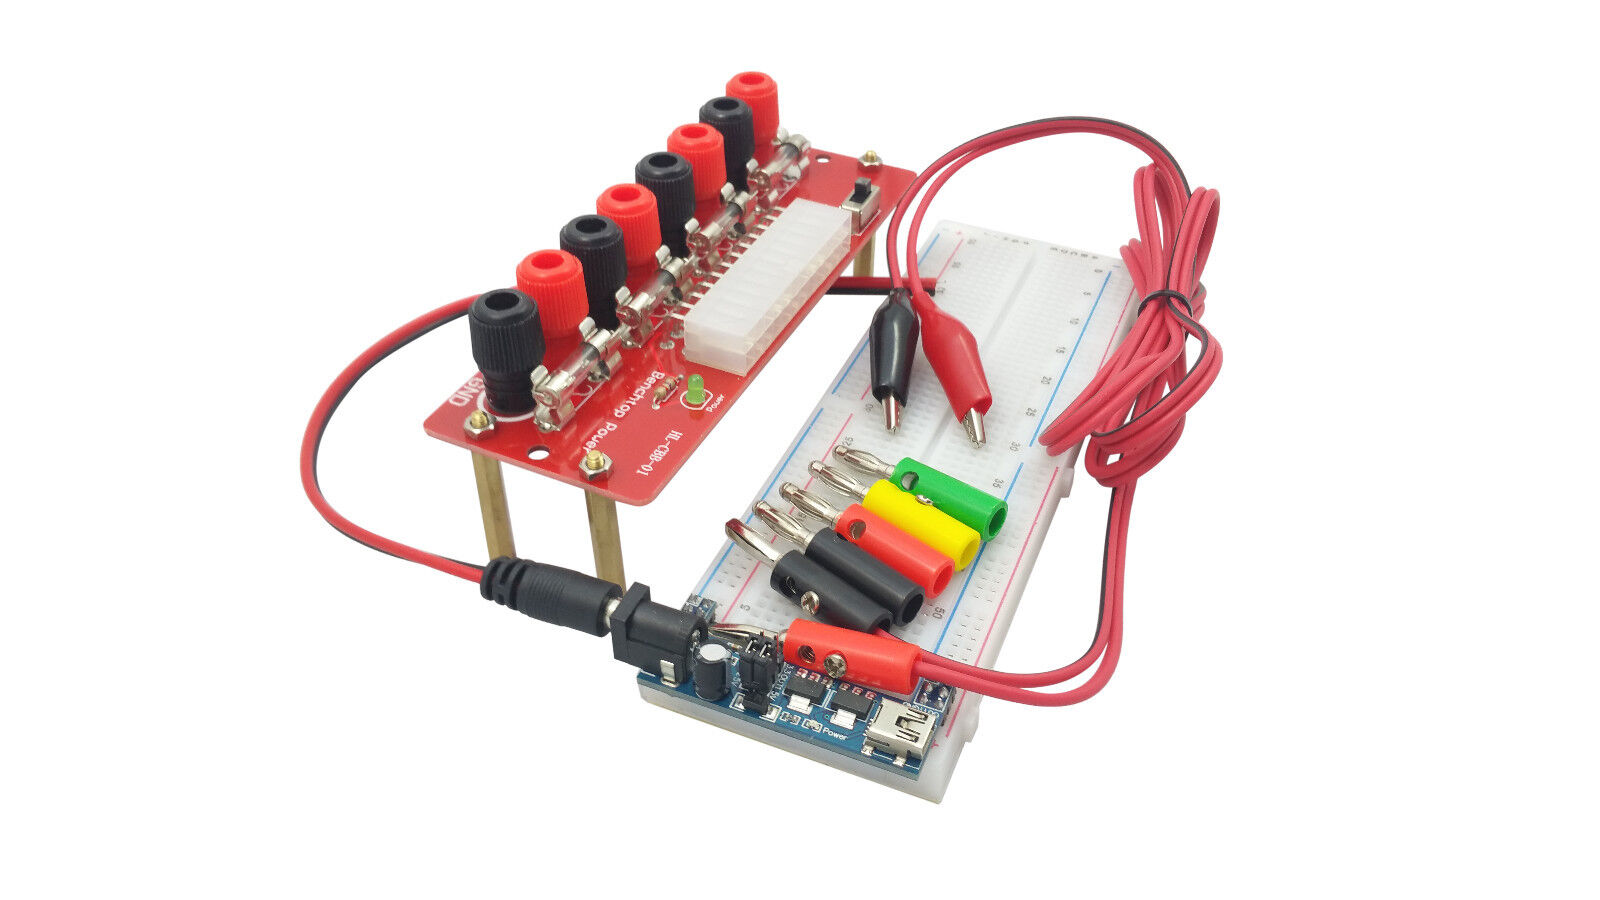 Atx Computer Power Supply Breakout Board Adapter